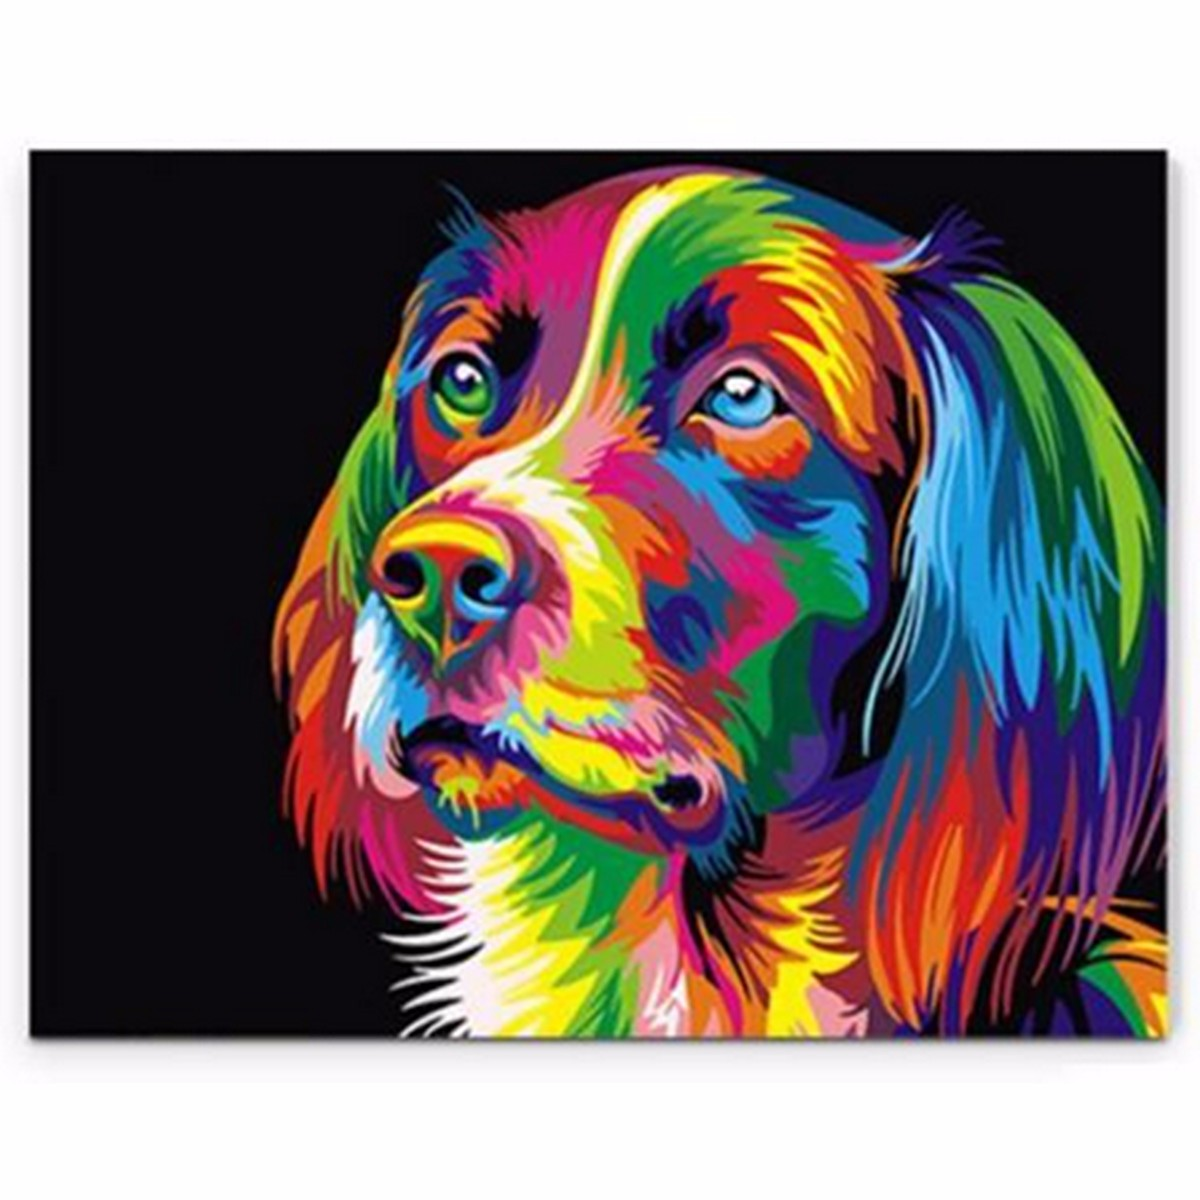 50x40CM ColorFul Puppy Dog Little Animal Pet DIY Self Handcrafted Paint Kit  Home Decor Wood Framed